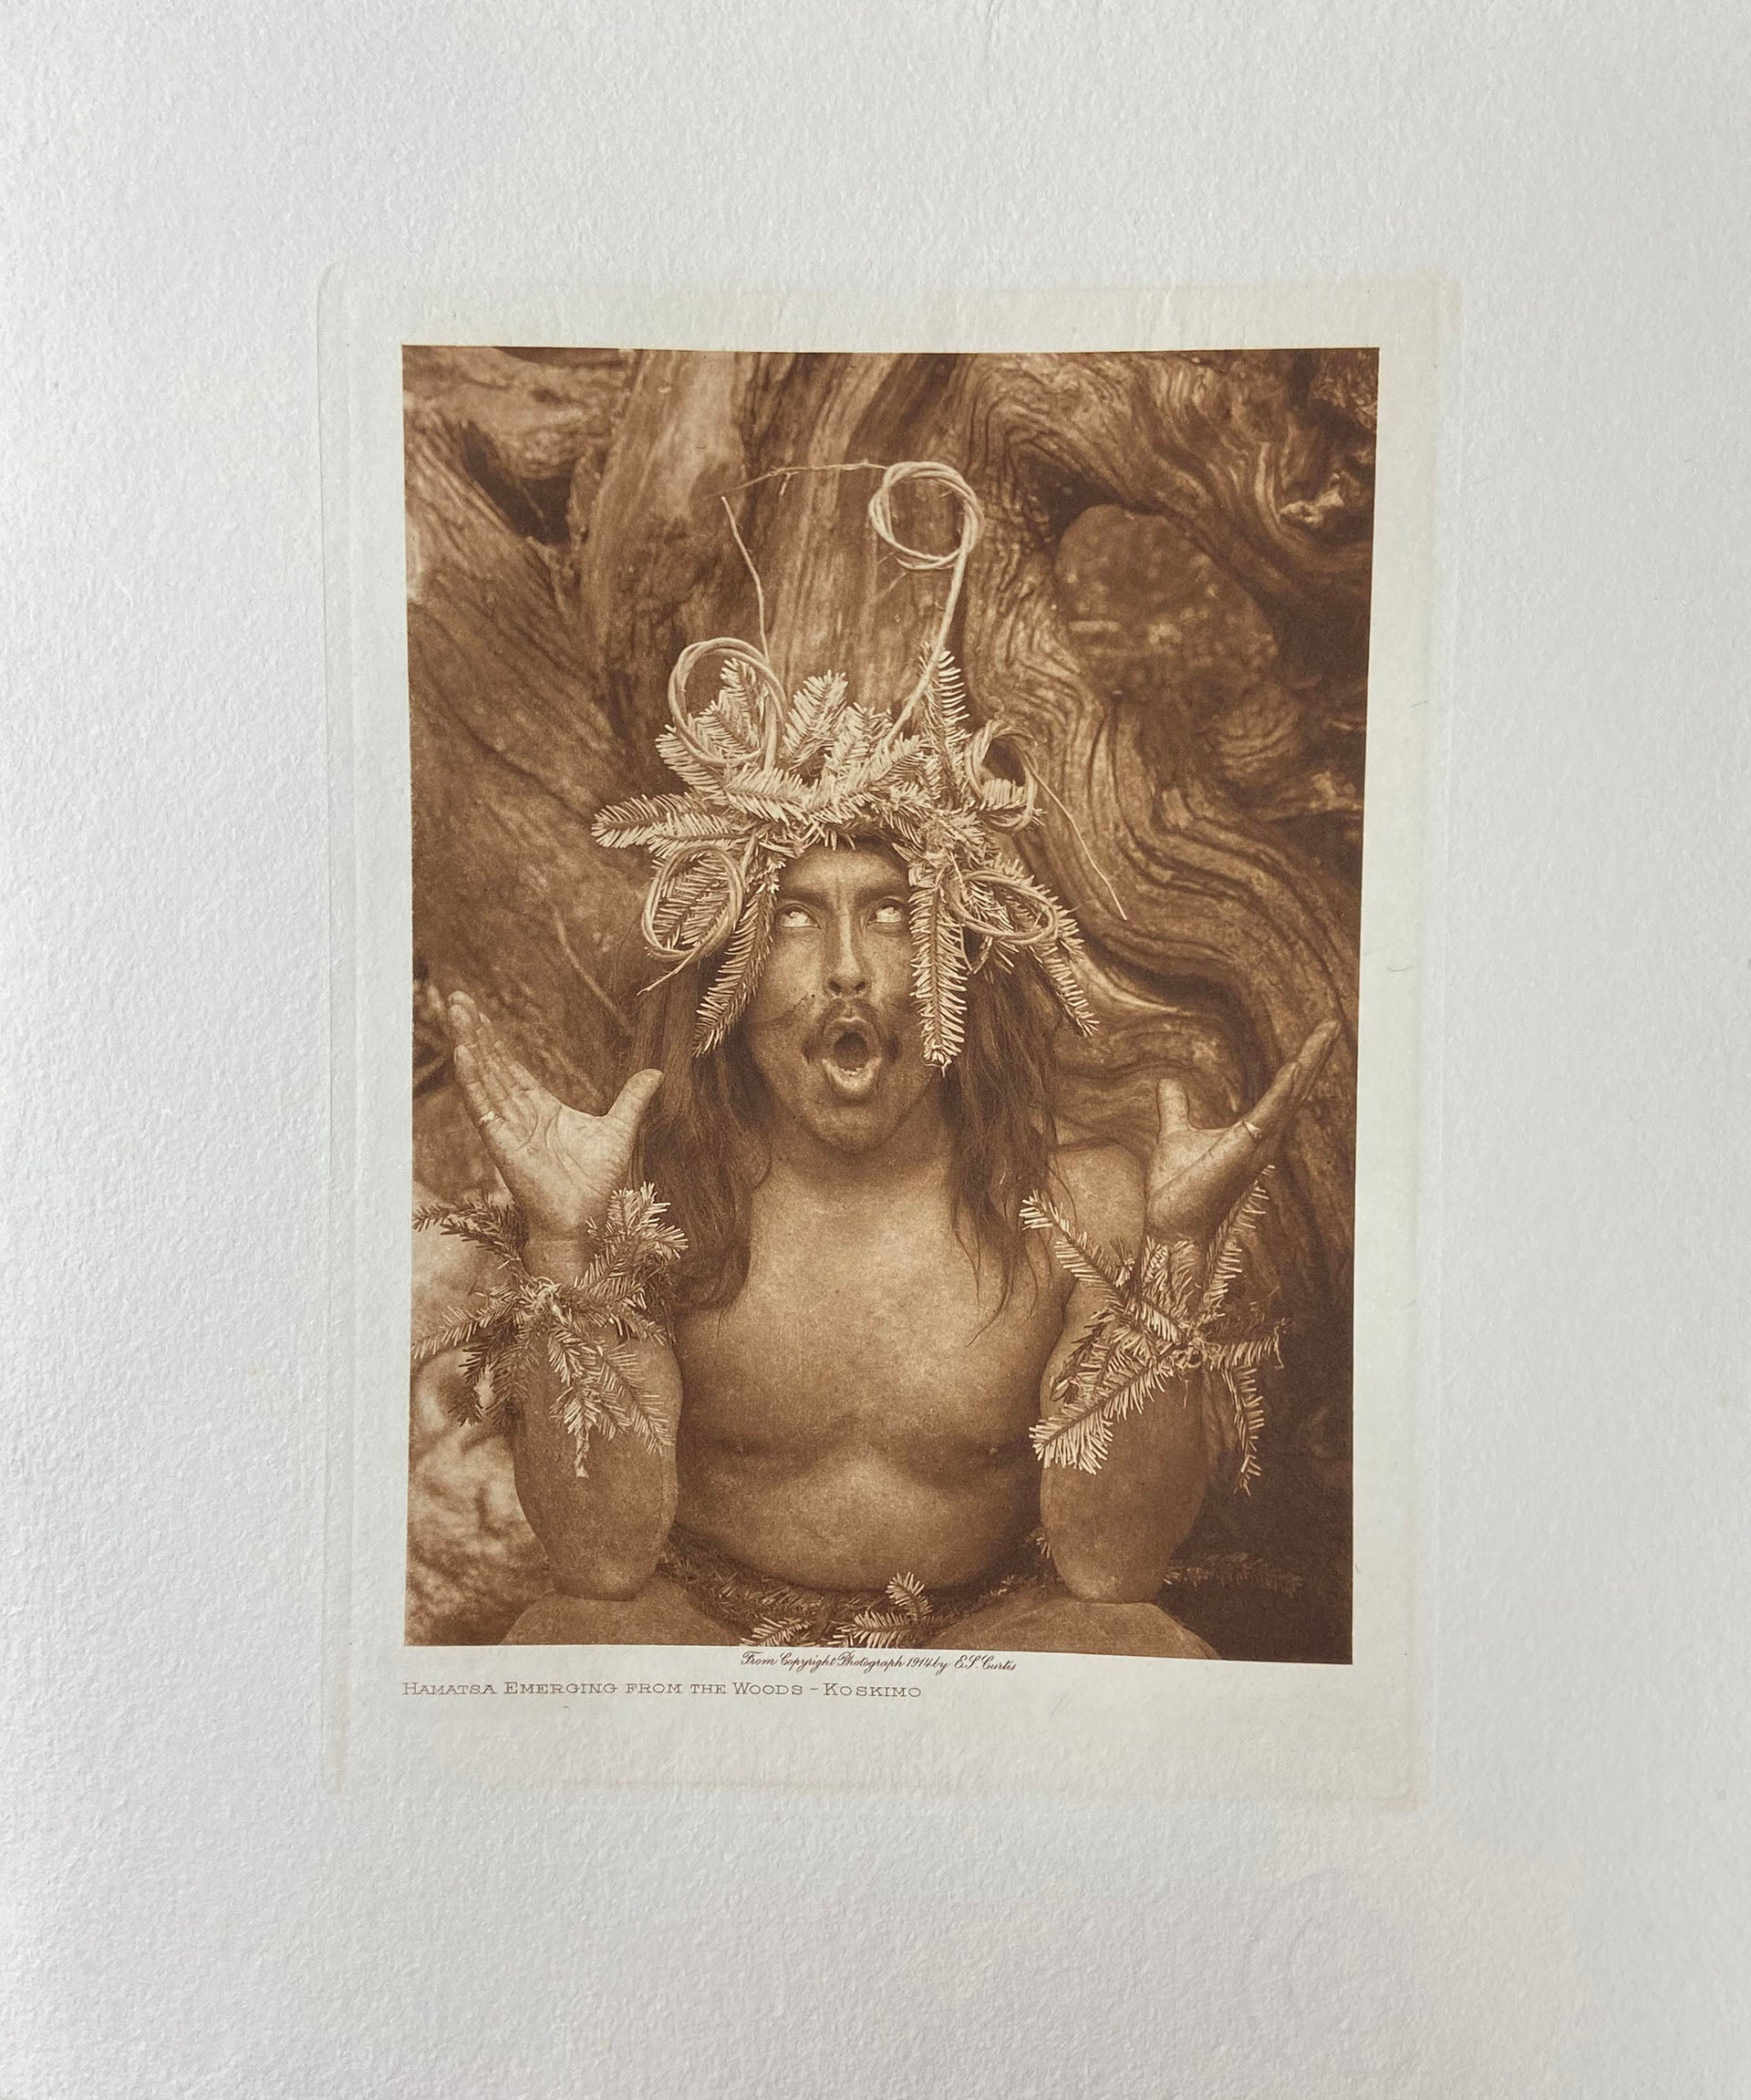 Hamatsa Emerging From the Woods